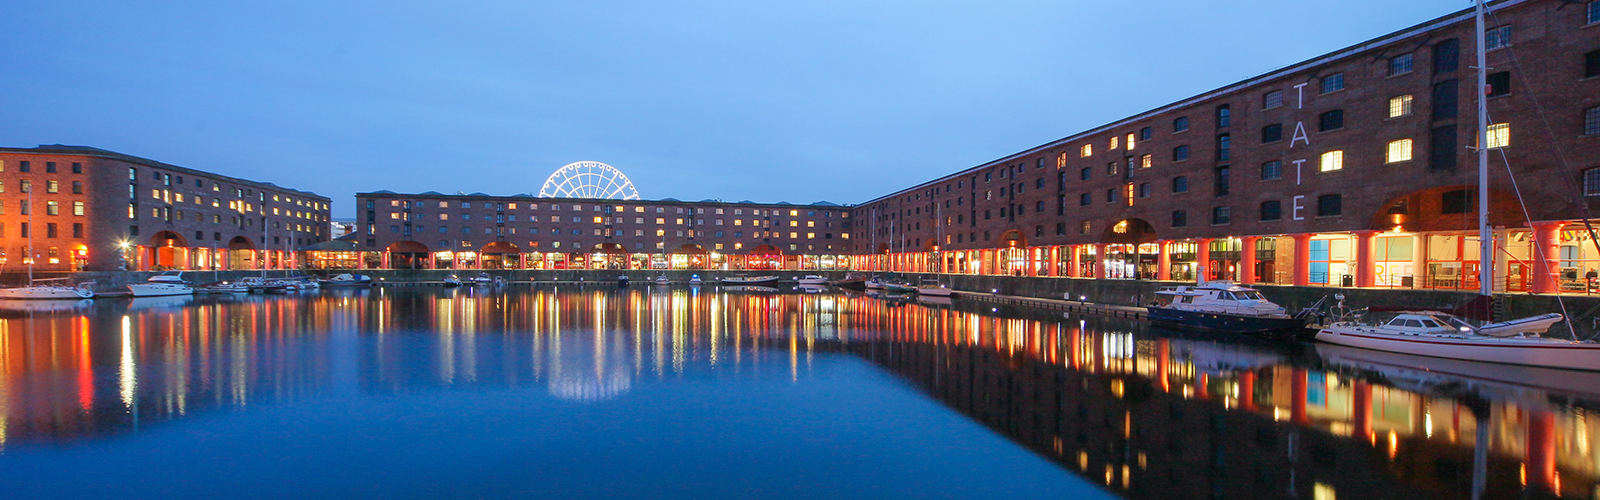 Albert dock,The Champions